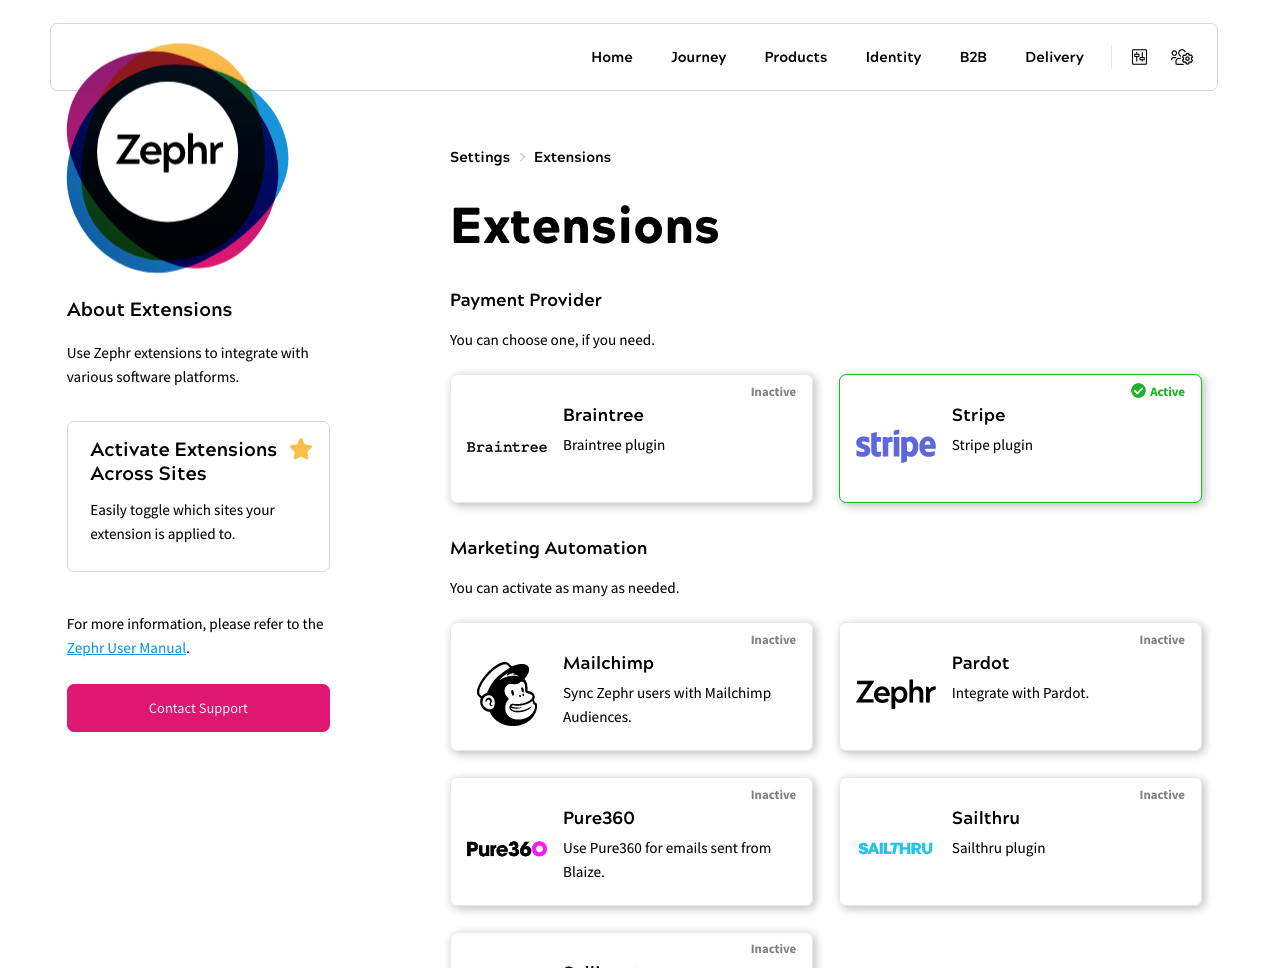 Zephr's Extensions Screen